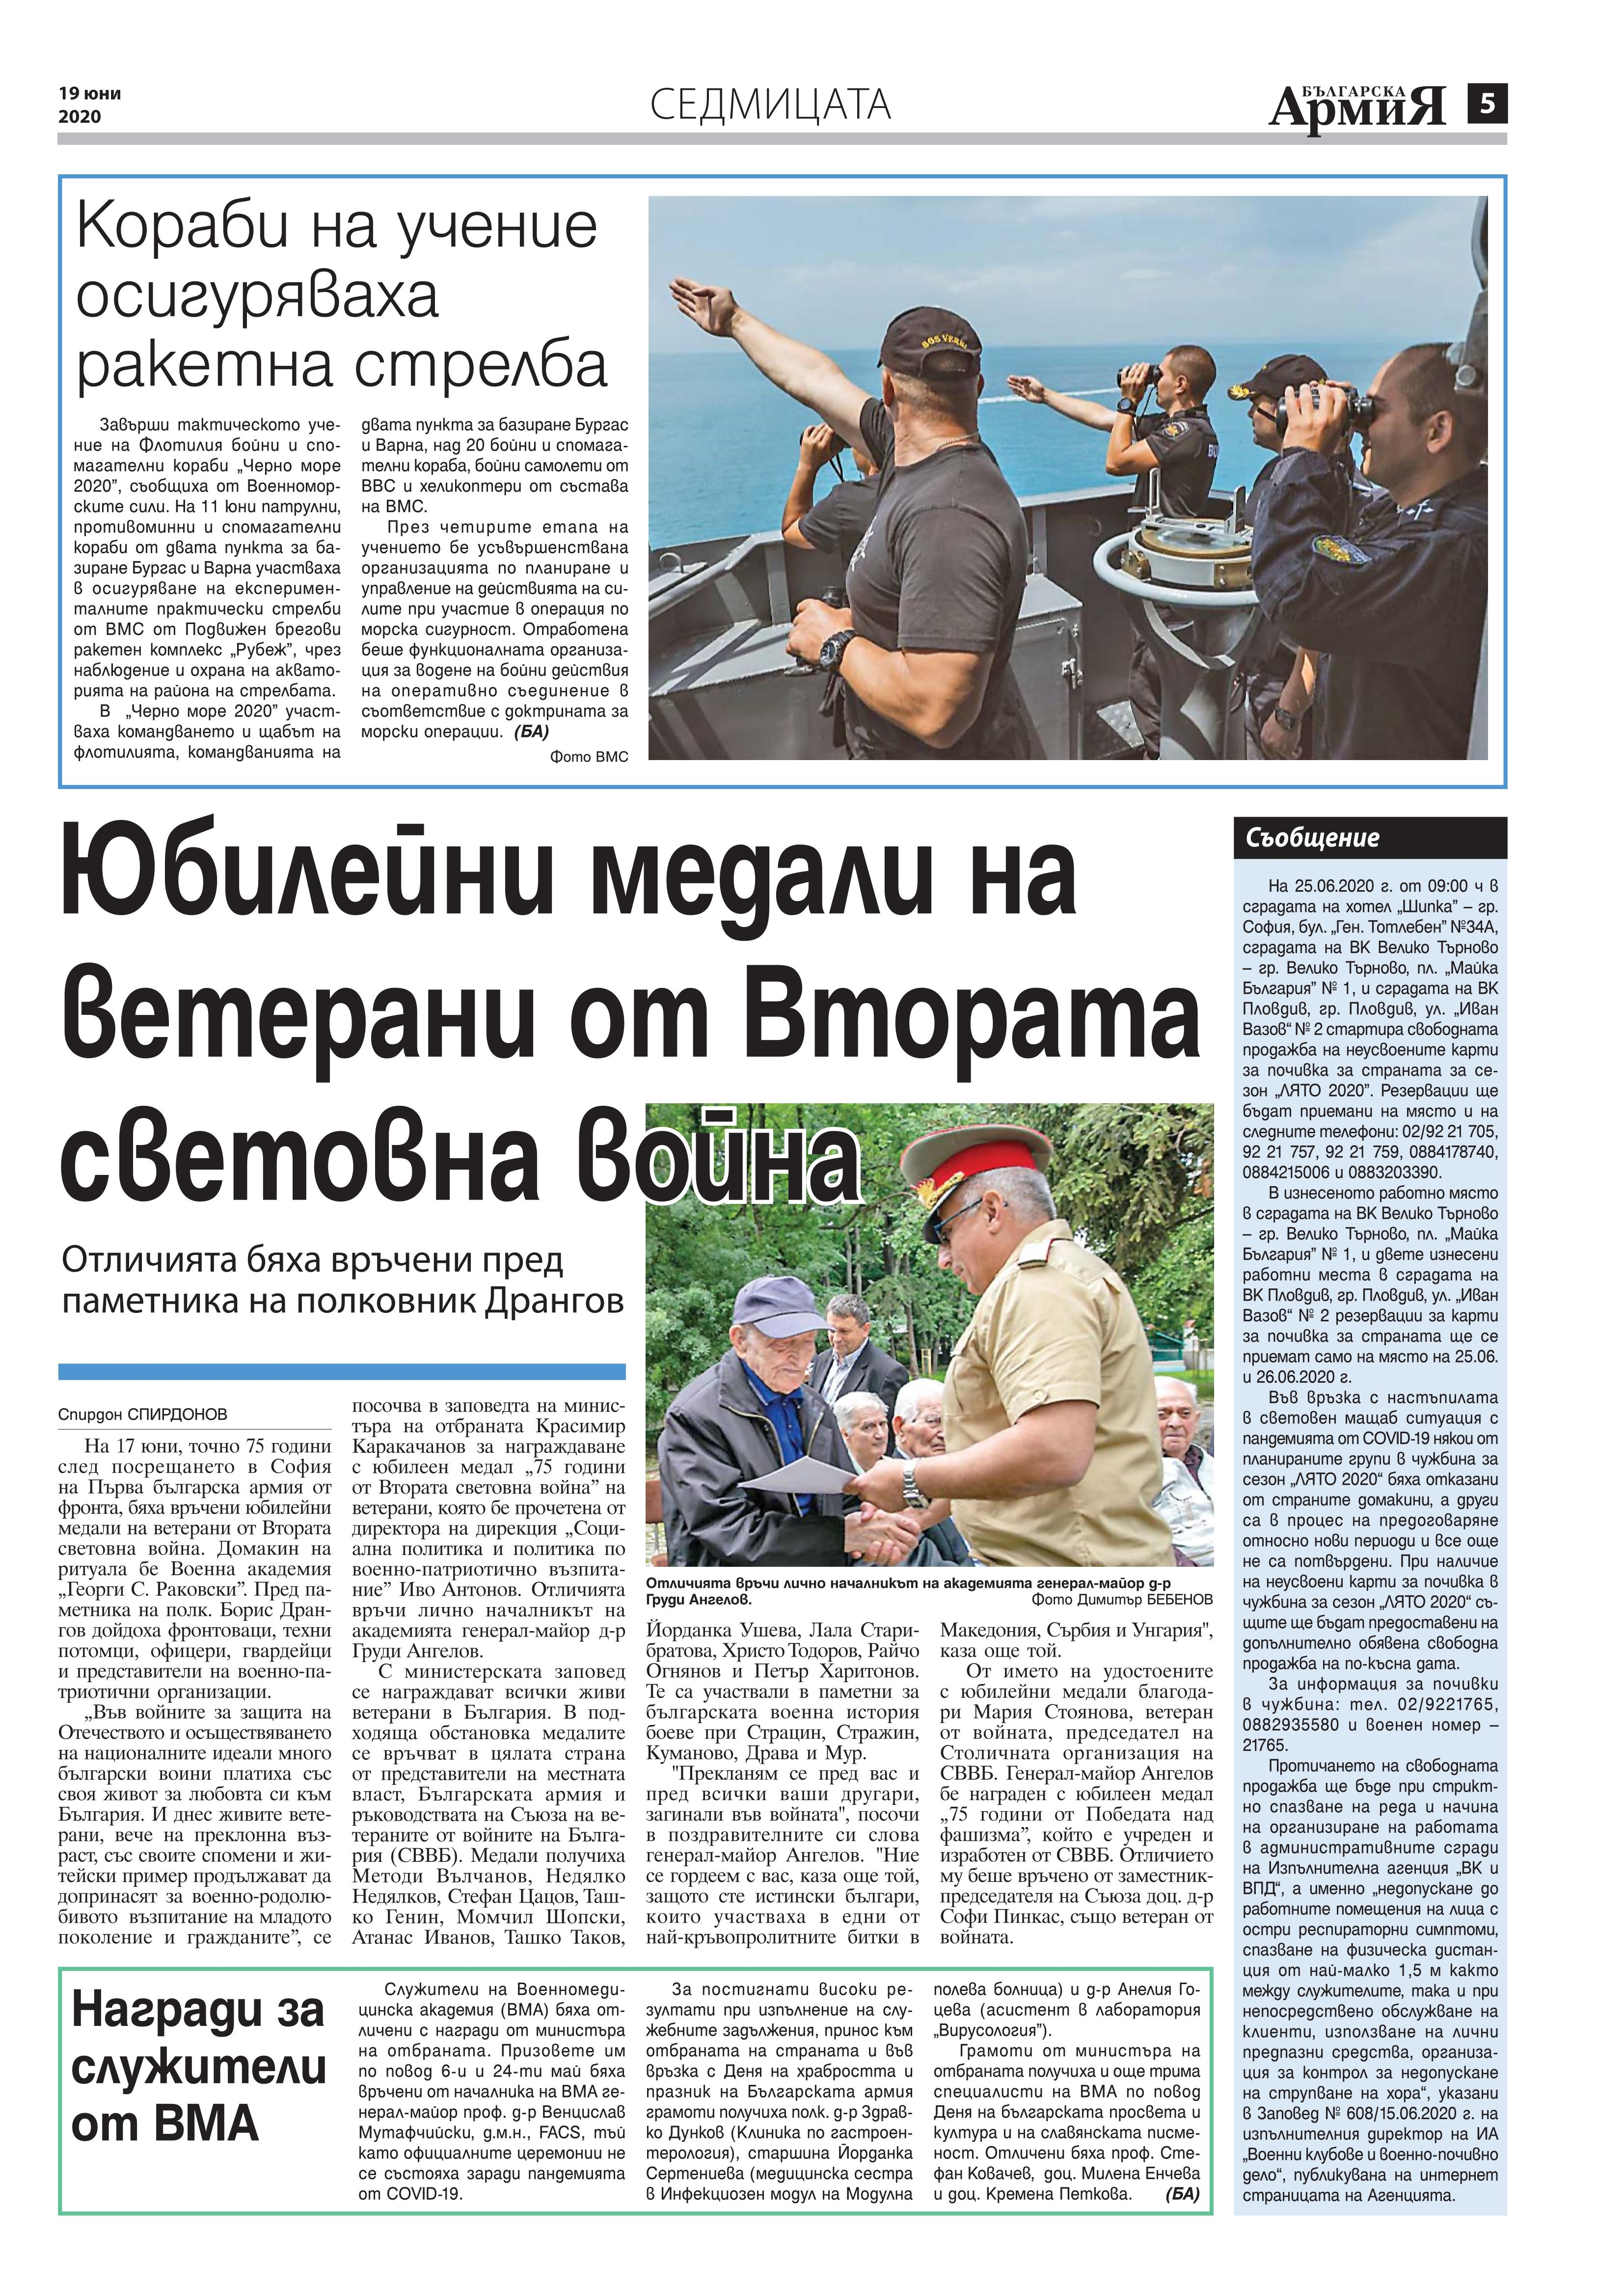 https://www.armymedia.bg/wp-content/uploads/2015/06/05.page1_-140.jpg